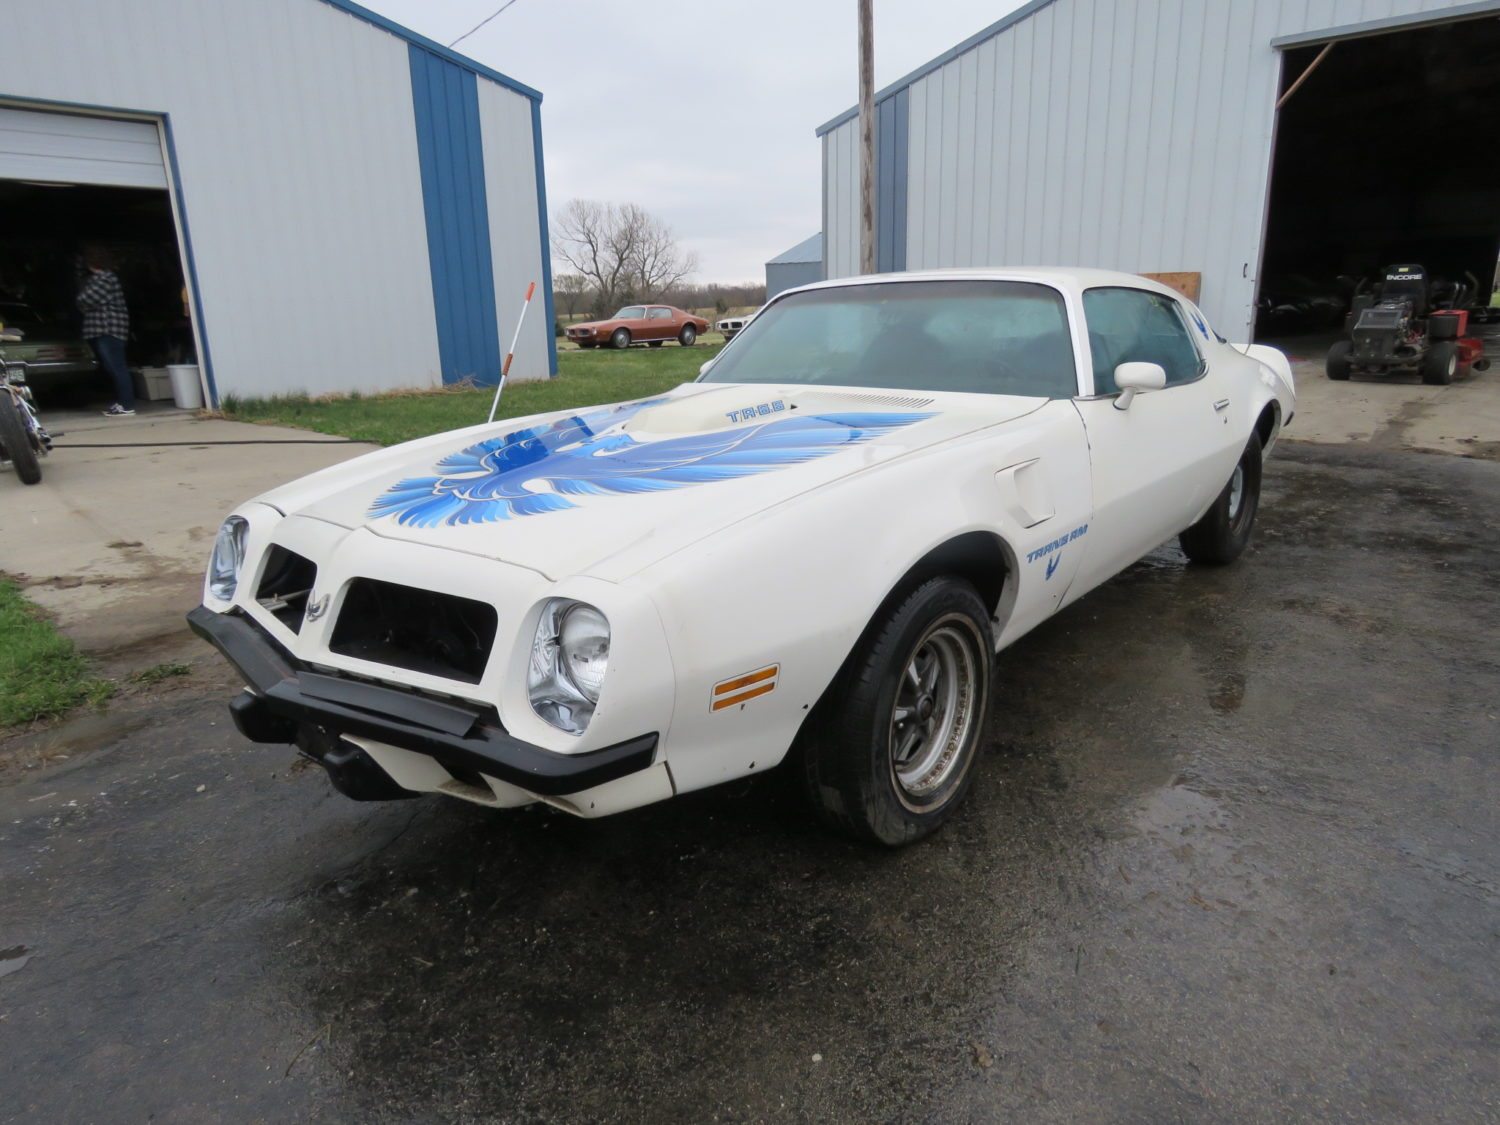 Amazing Trans Am & Pontiac Cars and Parts Hoard! The Kansas Collection - image 5